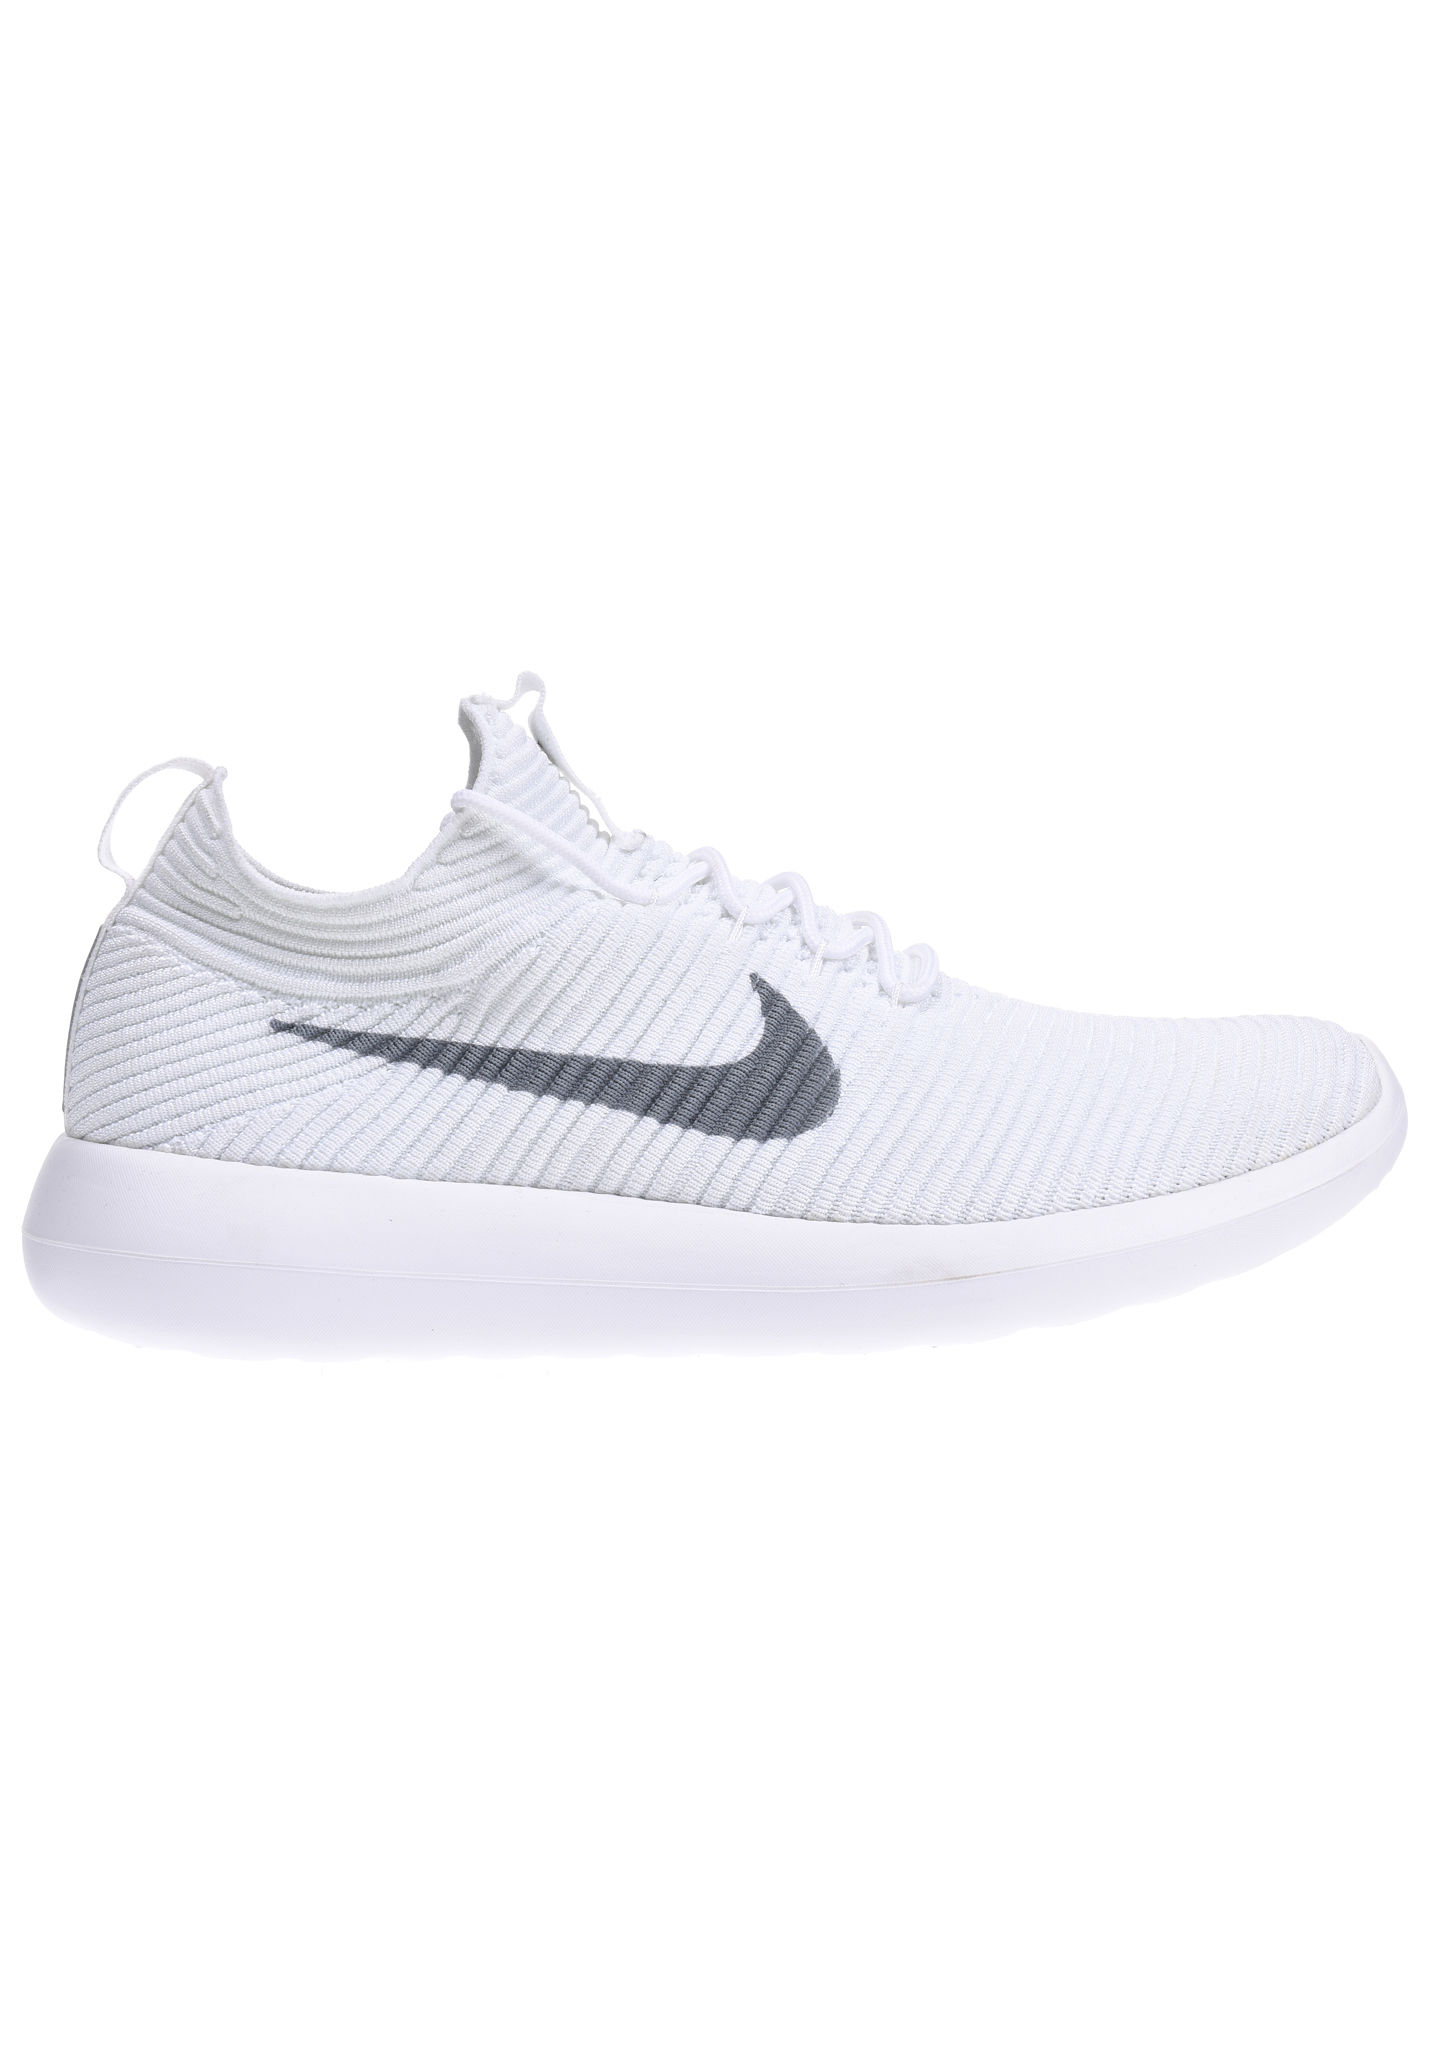 new style c6785 37d02 NIKE SPORTSWEAR Roshe Two Flyknit V2 - Sneakers for Men - White - Planet  Sports